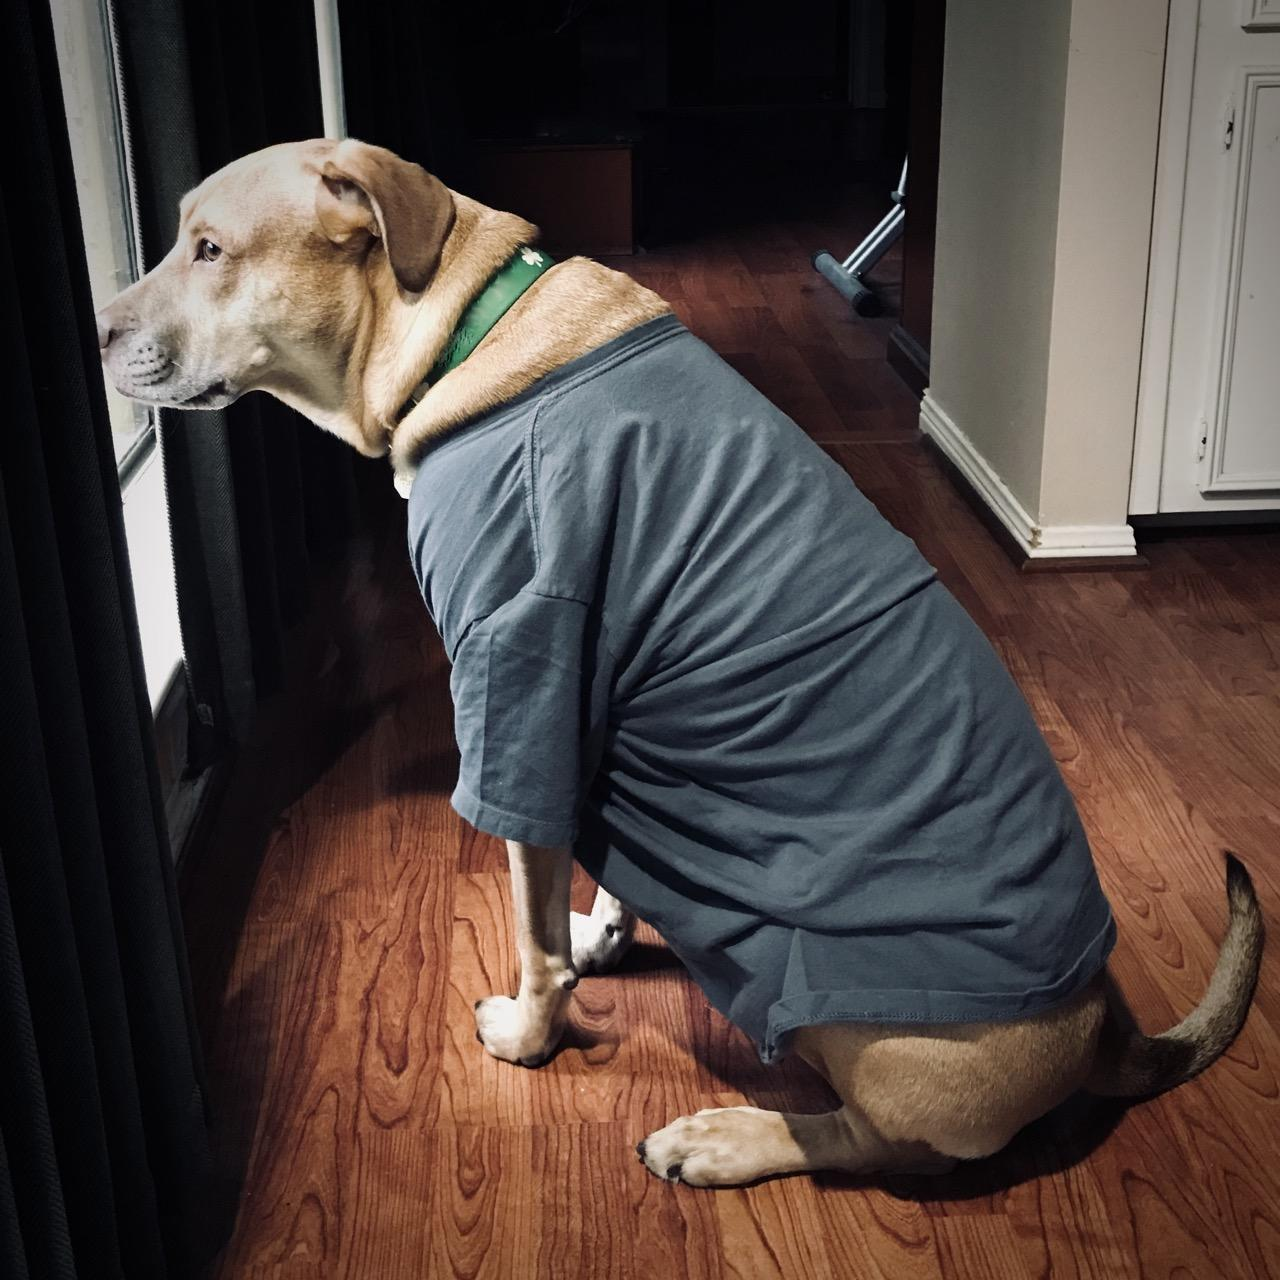 Murphy in a Thunder Shirt Looks Out the Window